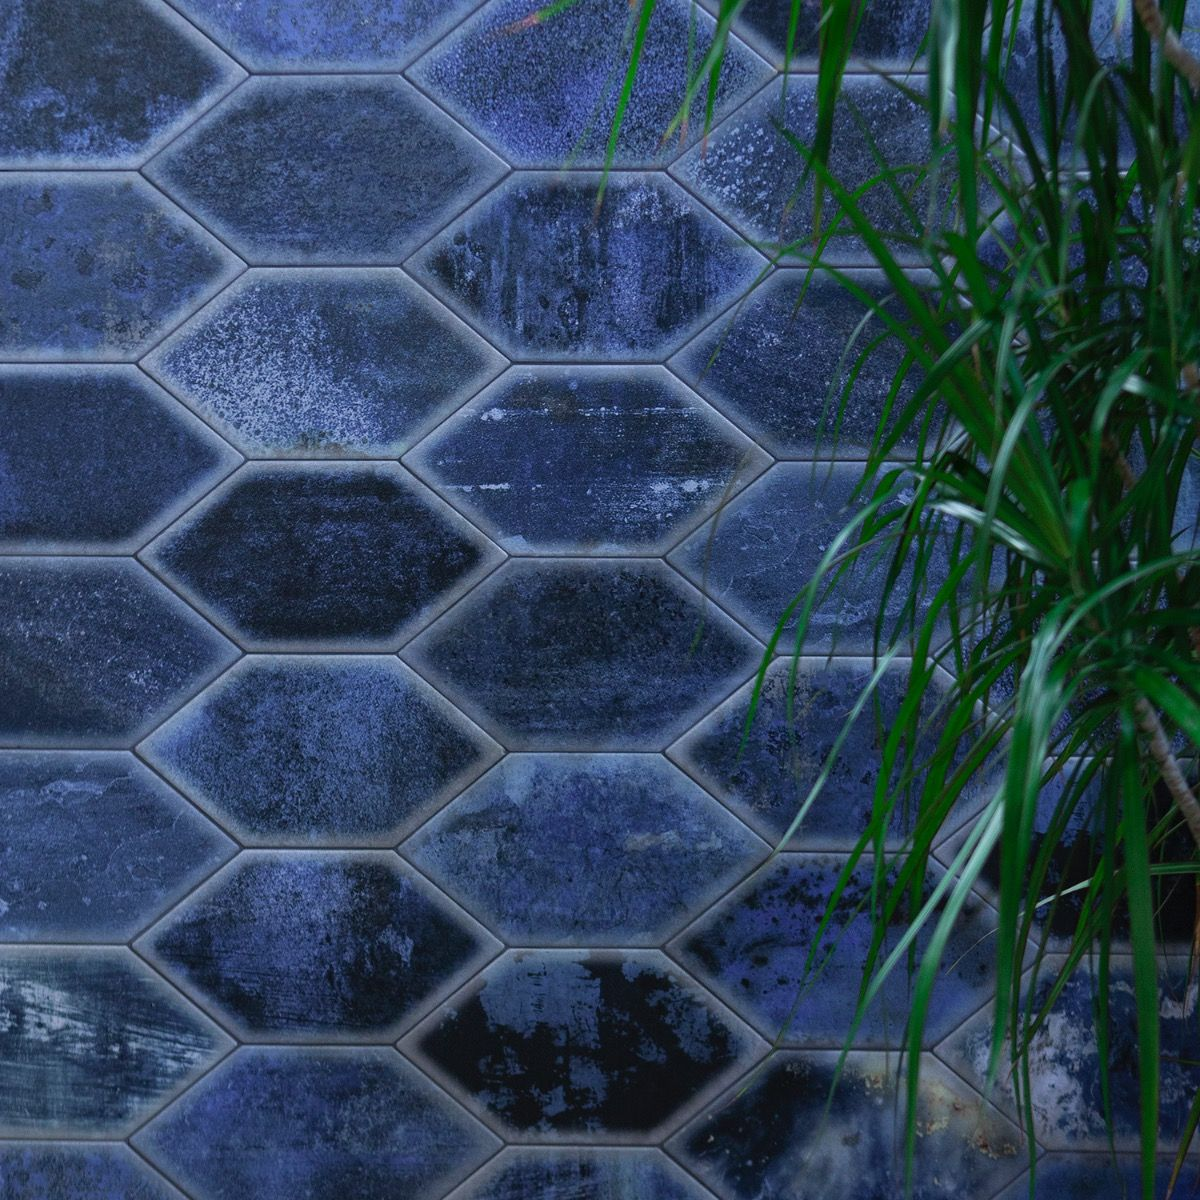 Adorno Hexagon Blue 7x13 Matte Porcelain Tile